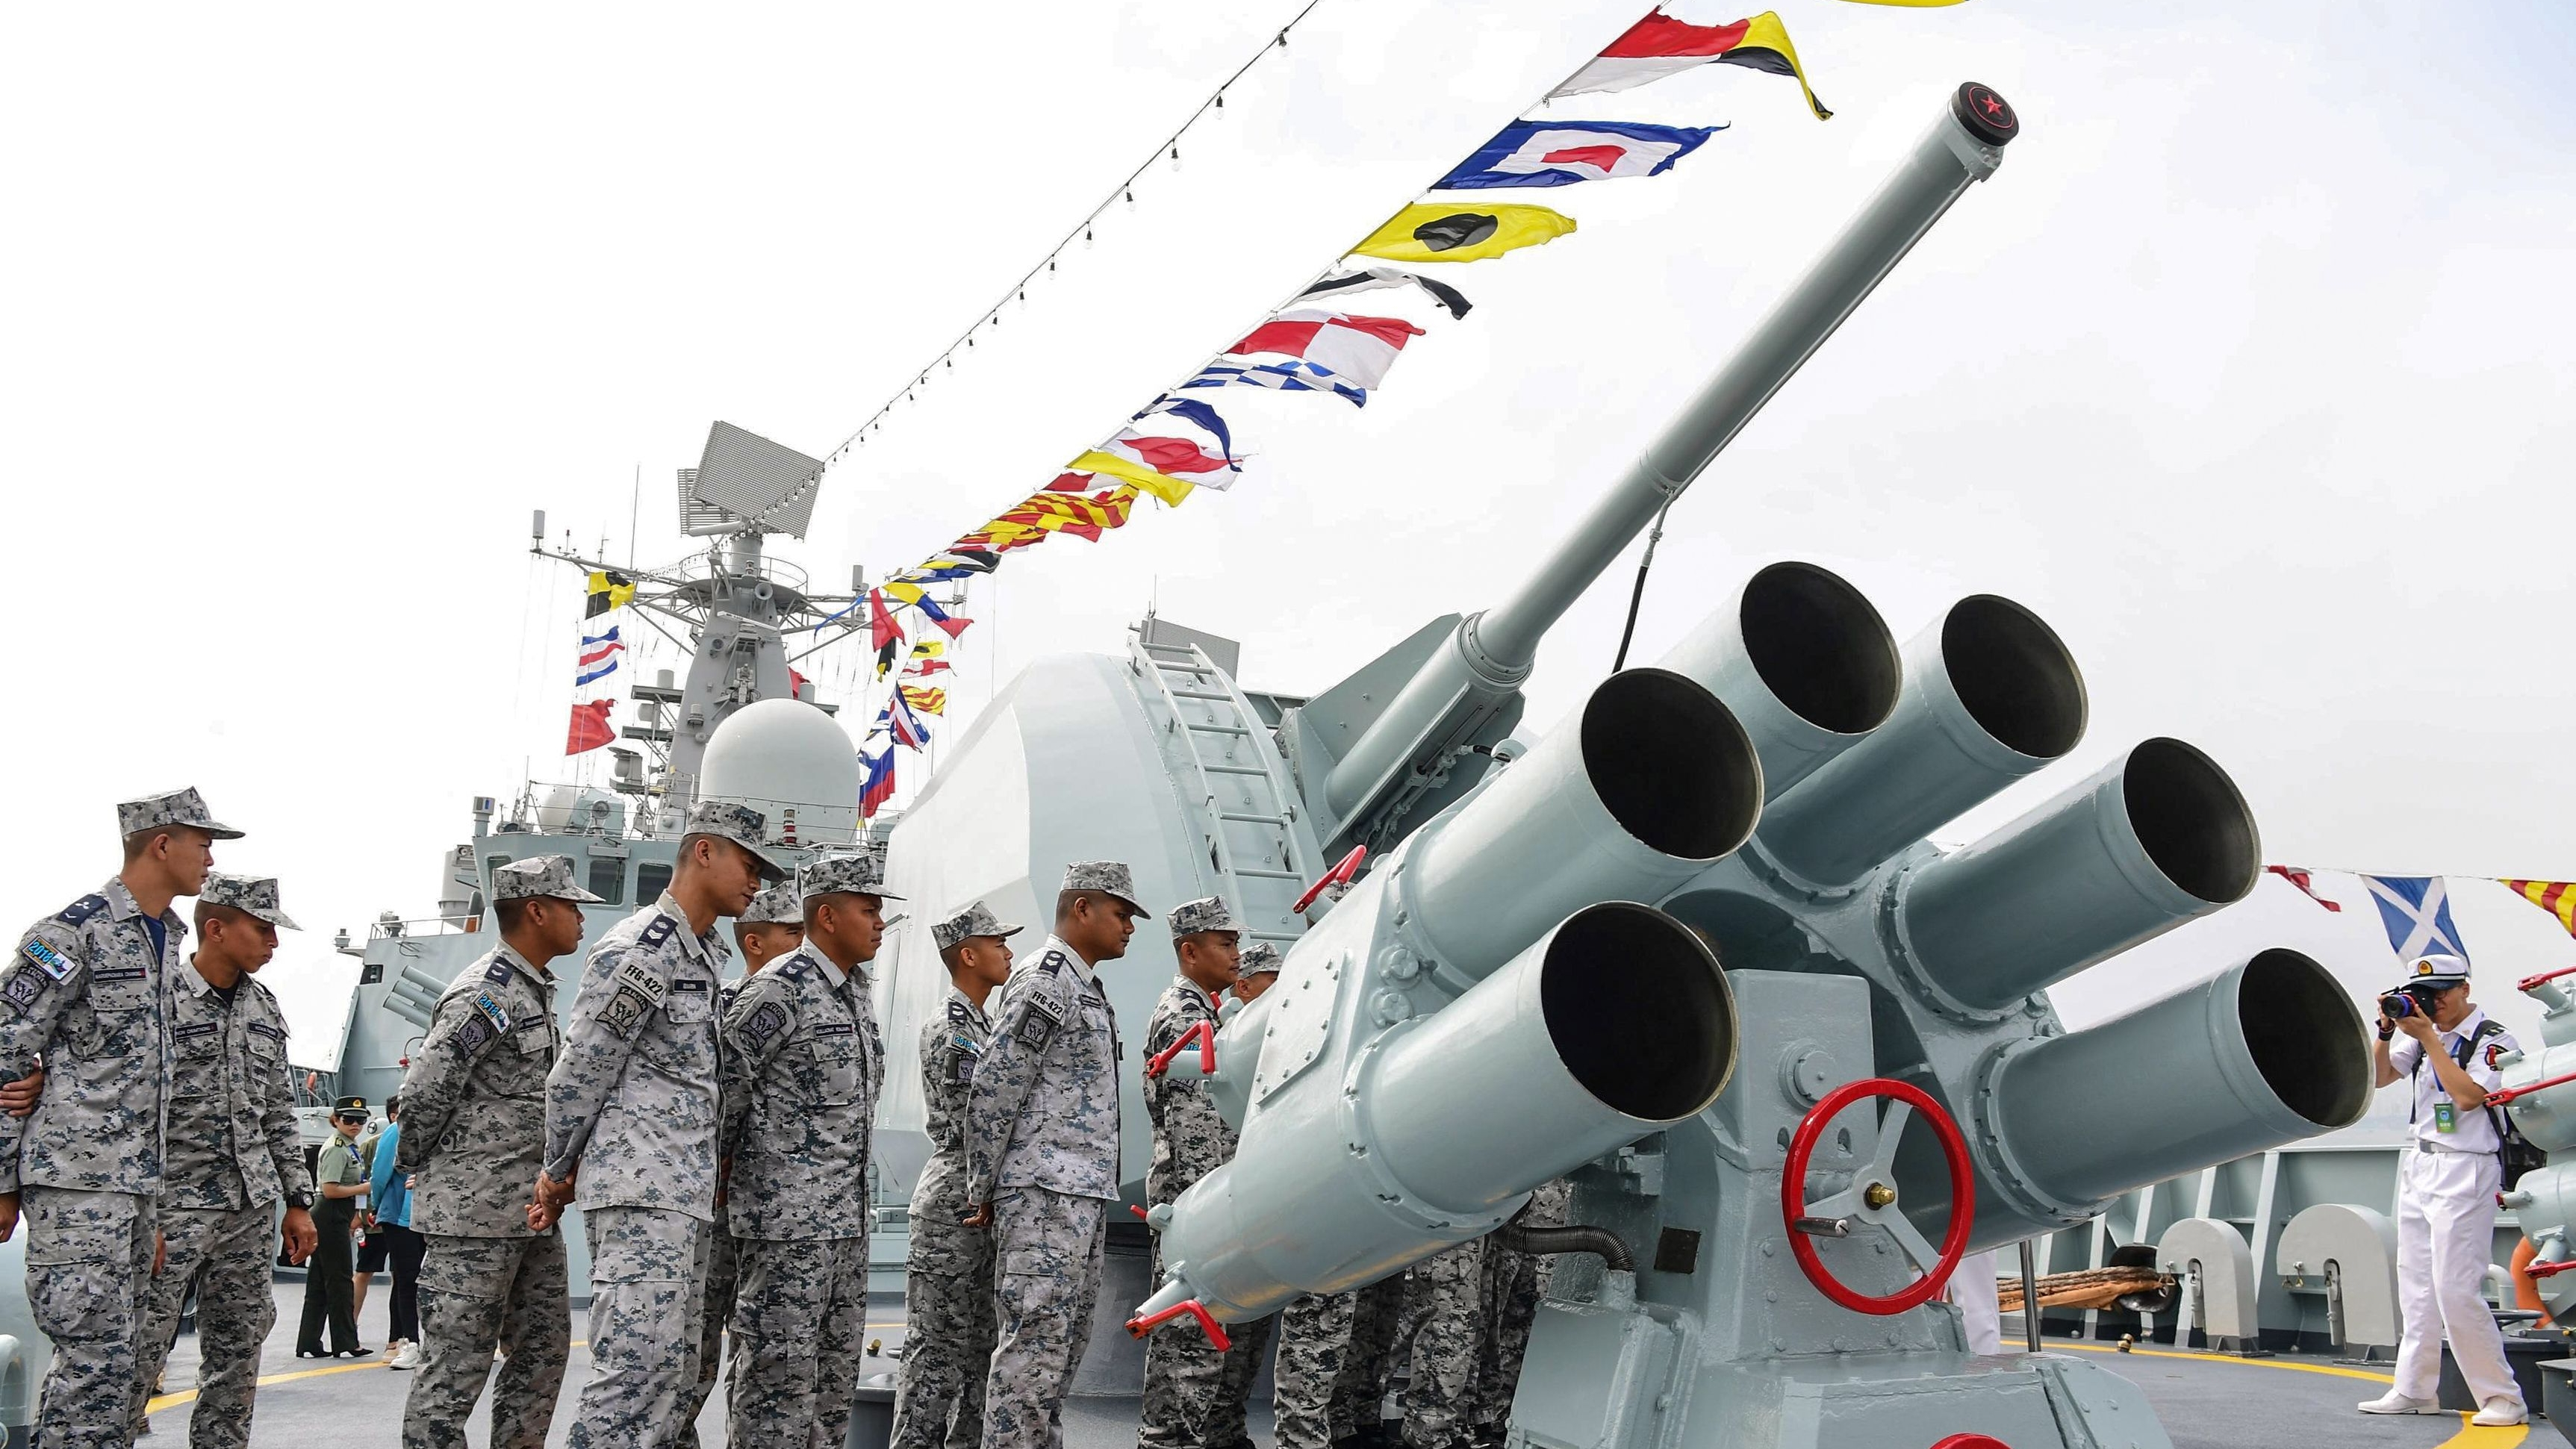 This photo taken on October 24, 2018 shows Thai sailors visiting Chinese guided missile destroyer Guangzhou during the ASEAN-China Maritime Exercise at a military port in Zhanjiang, in China's southern Guangdong province. - China and the Association of Southeast Asian Nations (ASEAN) states kicked off their first joint maritime exercises on October 22 in an effort to ease regional tensions linked to rival claims in the South China Sea. (STR/AFP/Getty Images)